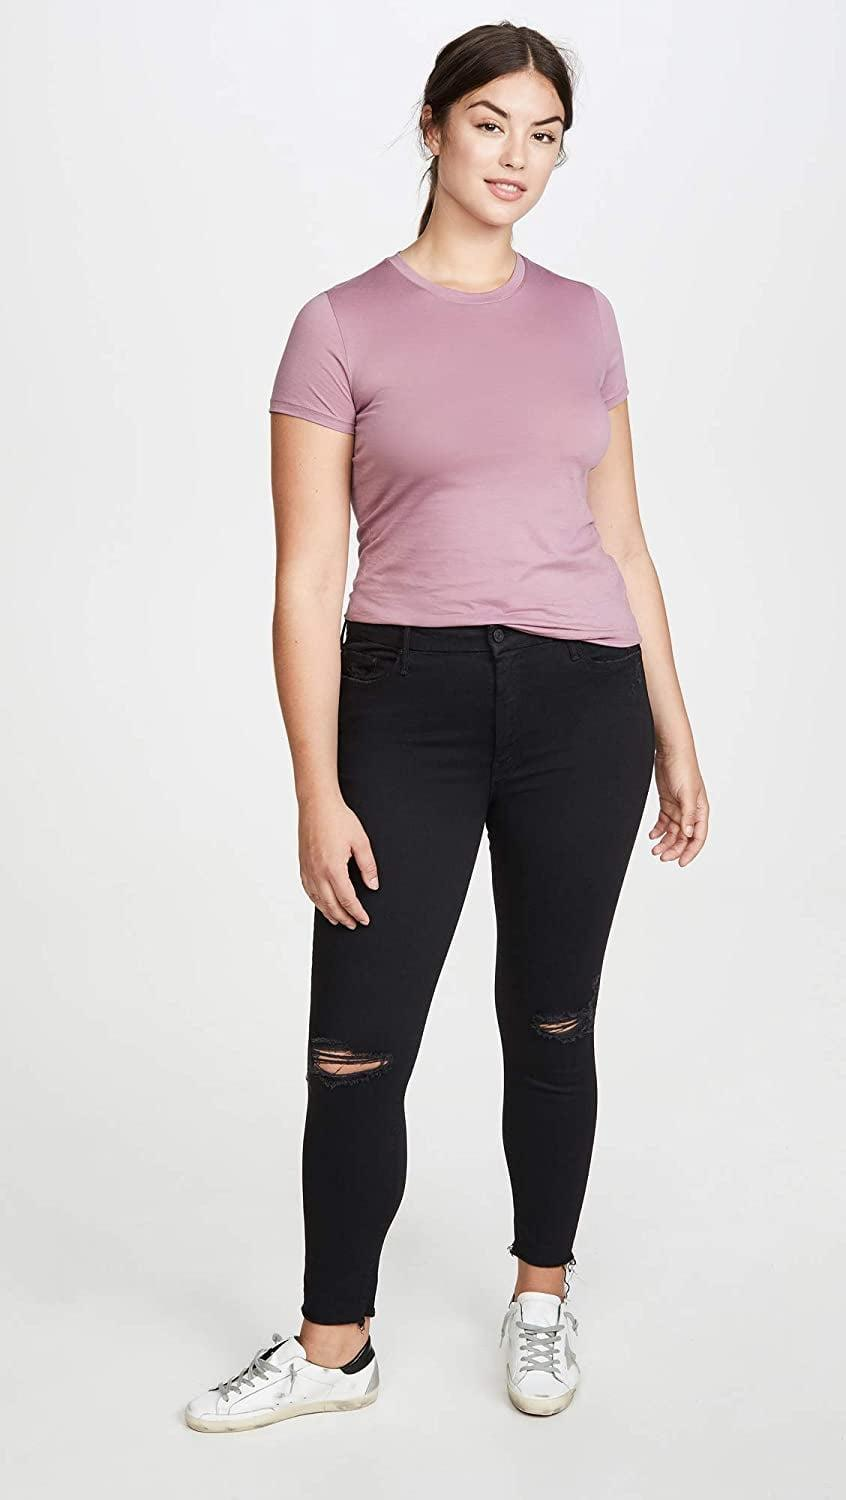 """<p>She's been spotted in these <a href=""""https://www.popsugar.com/buy/Mother-Looker-Frayed-Ankle-Jeans-583839?p_name=Mother%20The%20Looker%20Frayed%20Ankle%20Jeans&retailer=amazon.com&pid=583839&price=158&evar1=fab%3Aus&evar9=47565691&evar98=https%3A%2F%2Fwww.popsugar.com%2Fphoto-gallery%2F47565691%2Fimage%2F47565693%2FMother-Looker-Frayed-Ankle-Jeans&list1=shopping%2Camazon%2Cdenim%2Csale%2Cget%20the%20look%2Cmeghan%20markle%2Csale%20shopping%2Ccelebrity%20style&prop13=api&pdata=1"""" class=""""link rapid-noclick-resp"""" rel=""""nofollow noopener"""" target=""""_blank"""" data-ylk=""""slk:Mother The Looker Frayed Ankle Jeans"""">Mother The Looker Frayed Ankle Jeans</a> ($158, originally $210).</p>"""